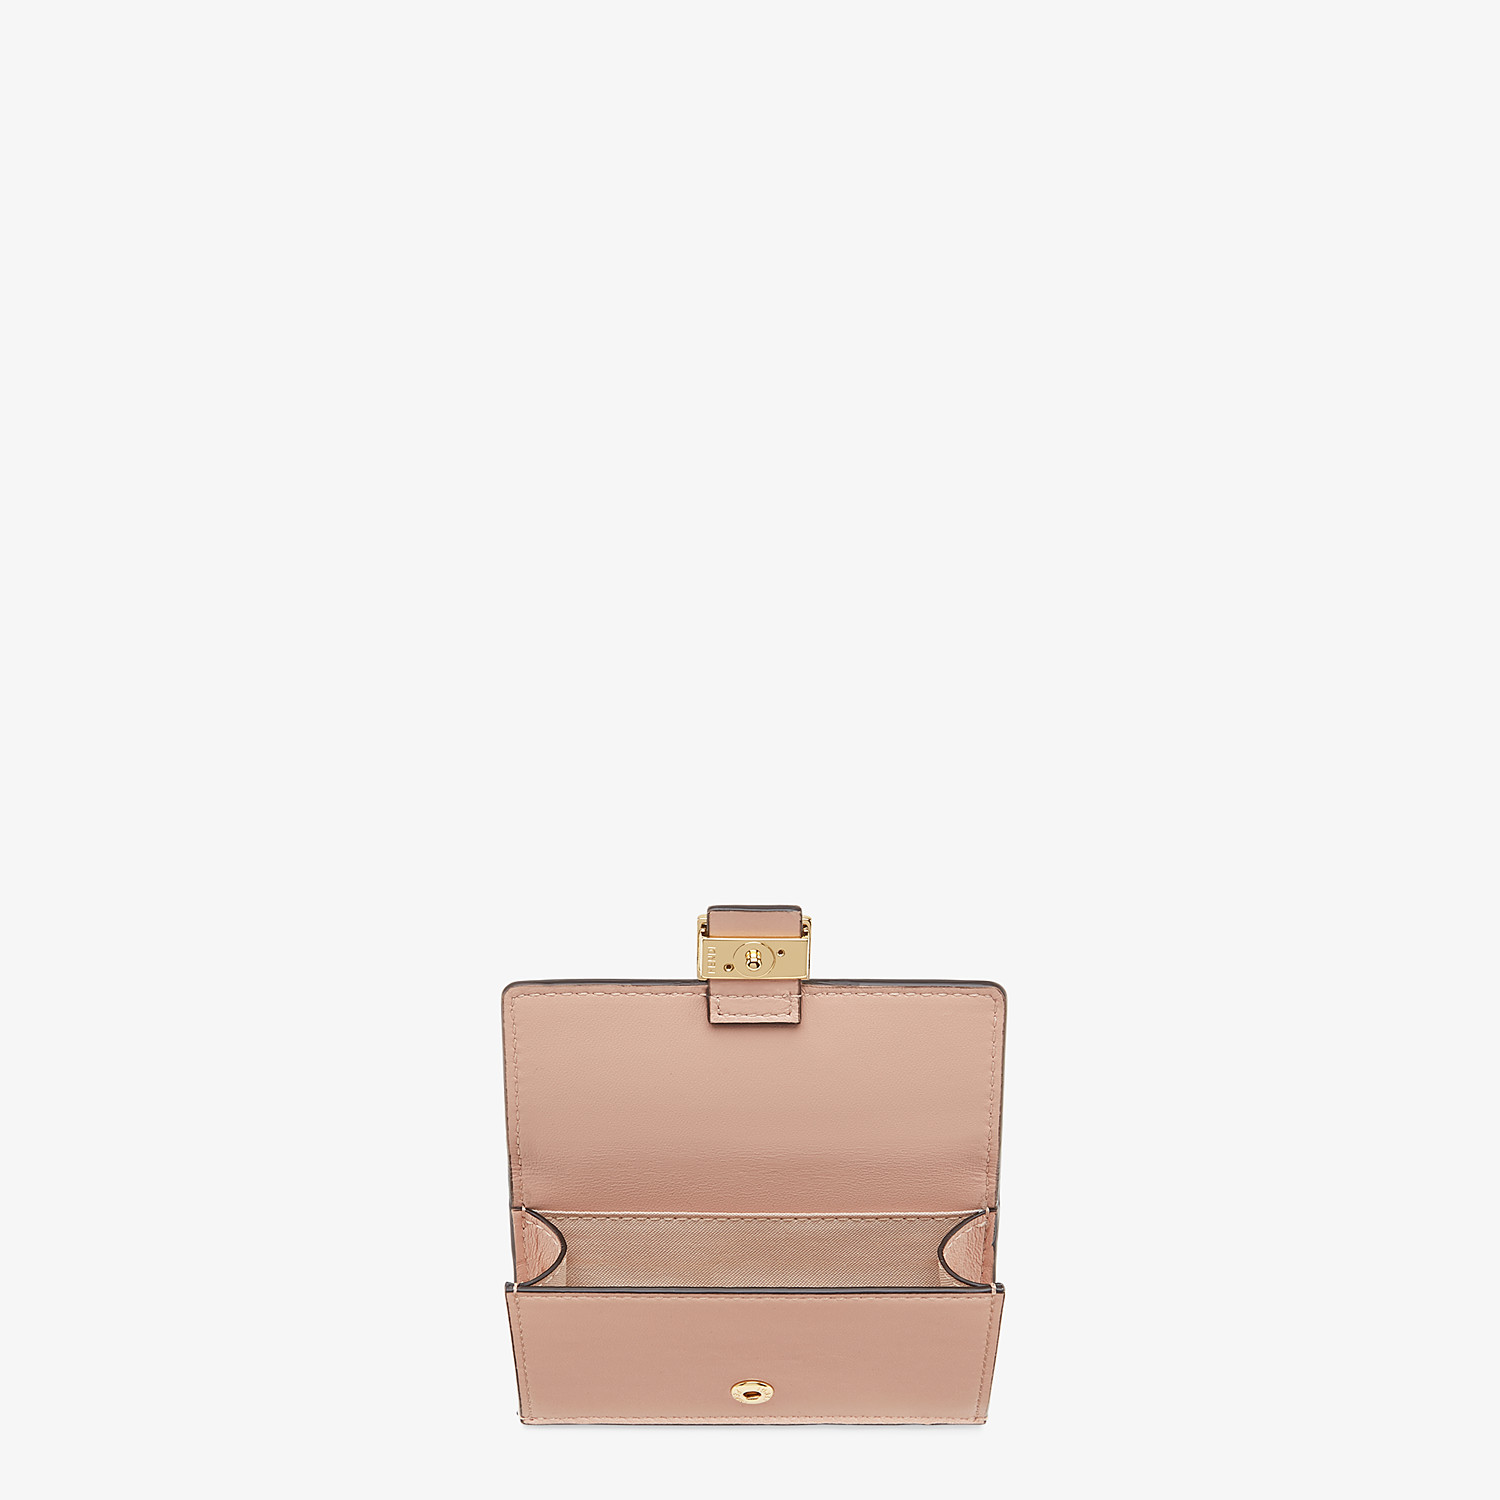 FENDI CARD HOLDER - Pink nappa leather card holder - view 3 detail